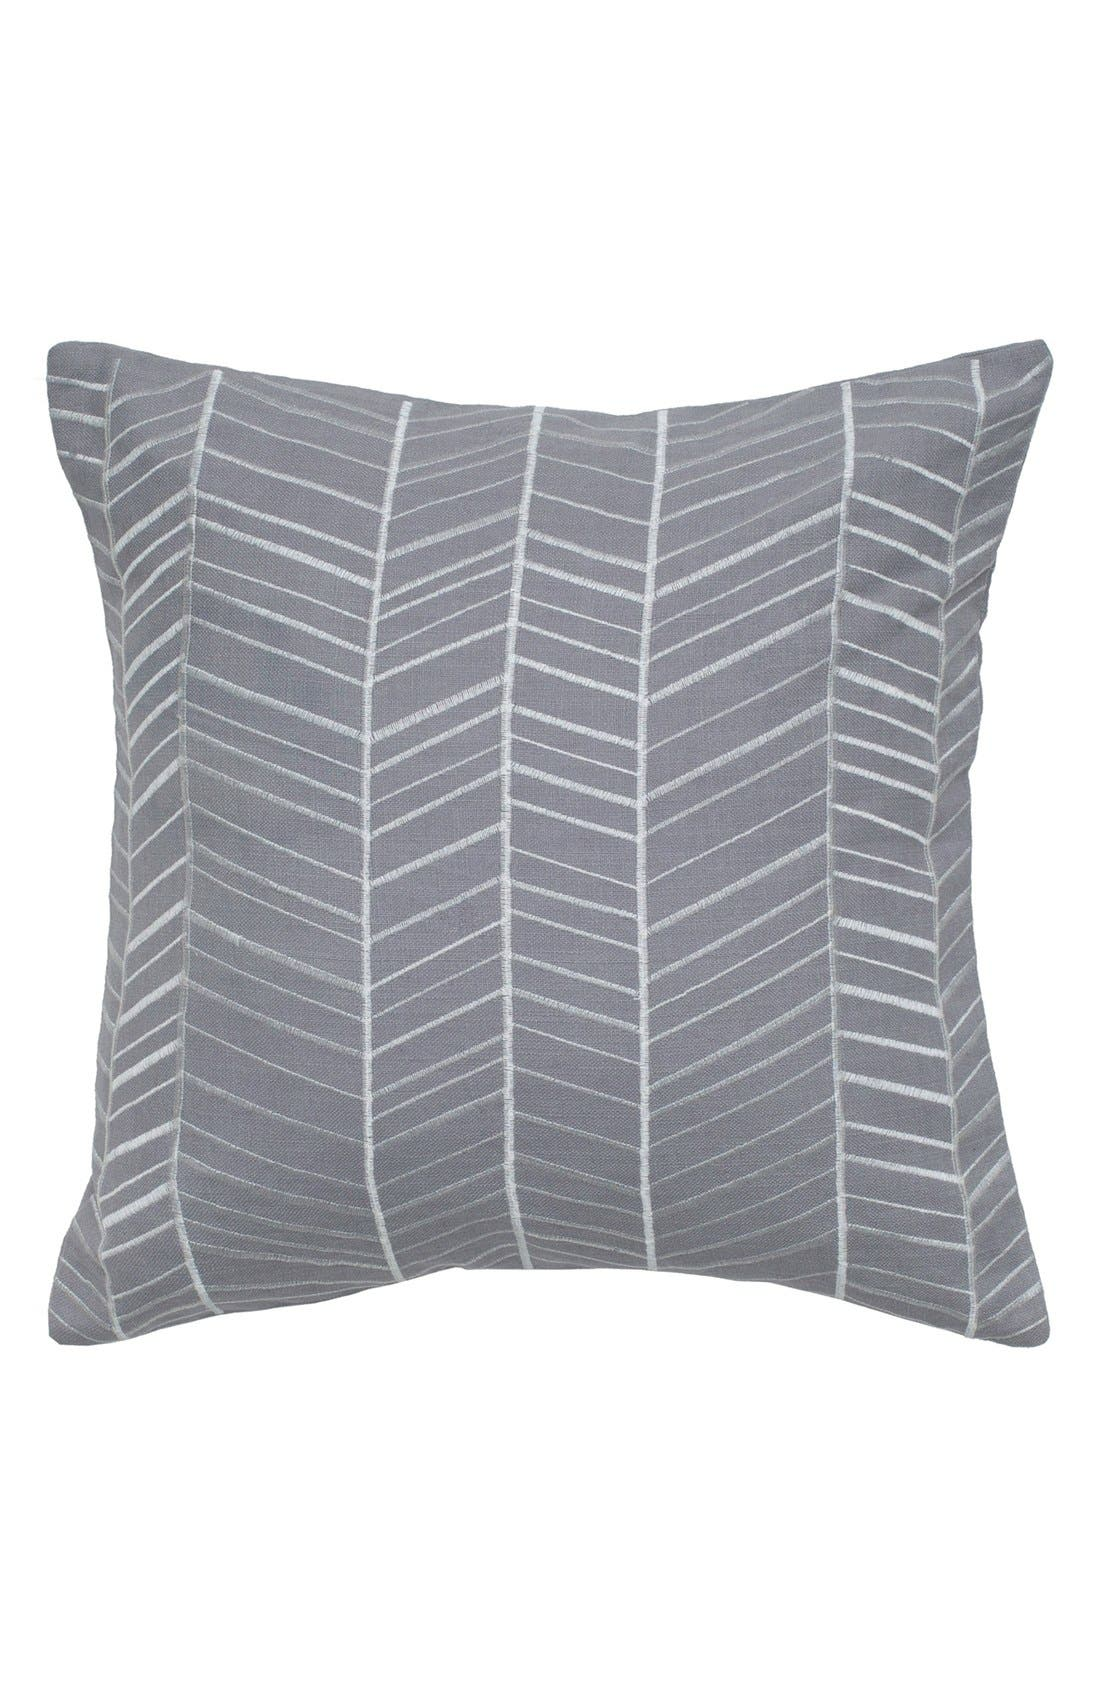 Main Image - Rizzy Home Chevron Pillow